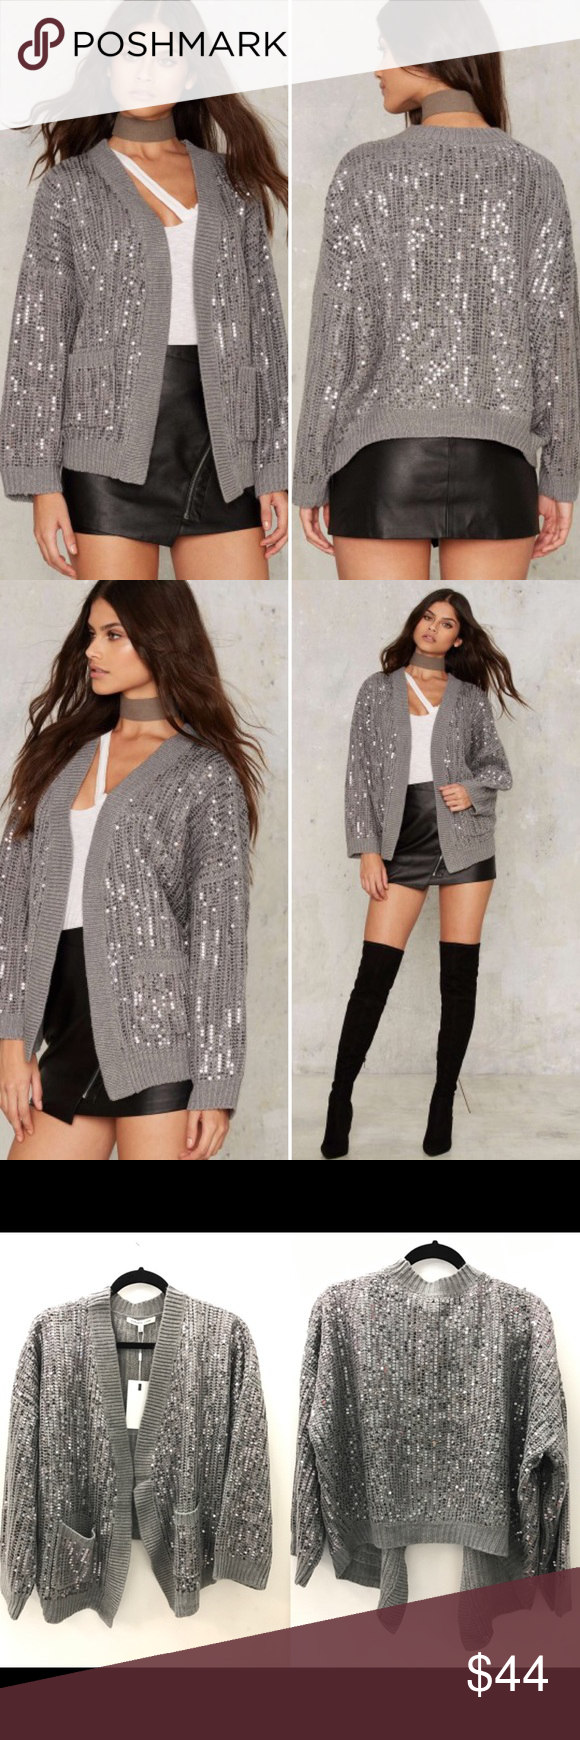 Nasty Gal Hooper Sequin Cardigan Boutique | D, Sequins and Cardigans